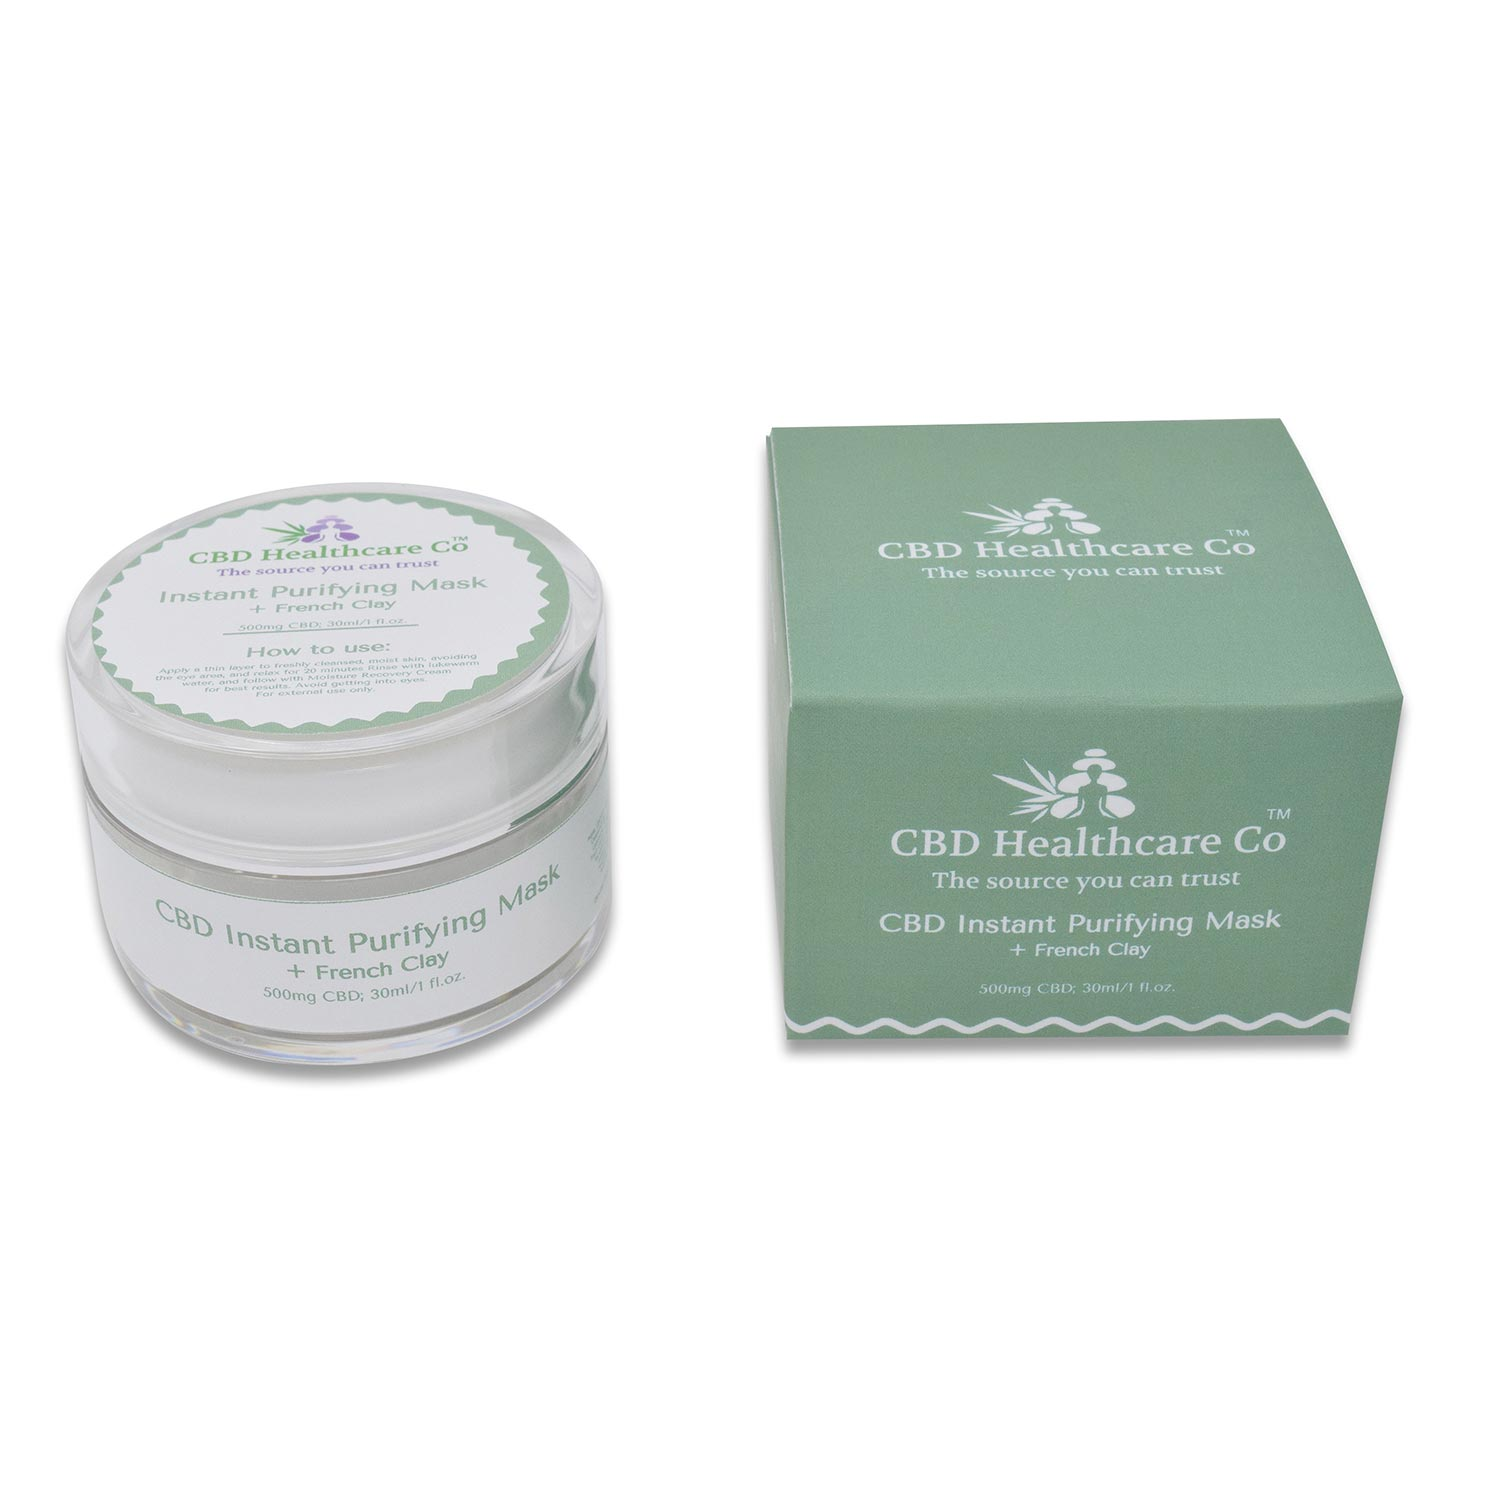 CBD Instant Purifying Mask